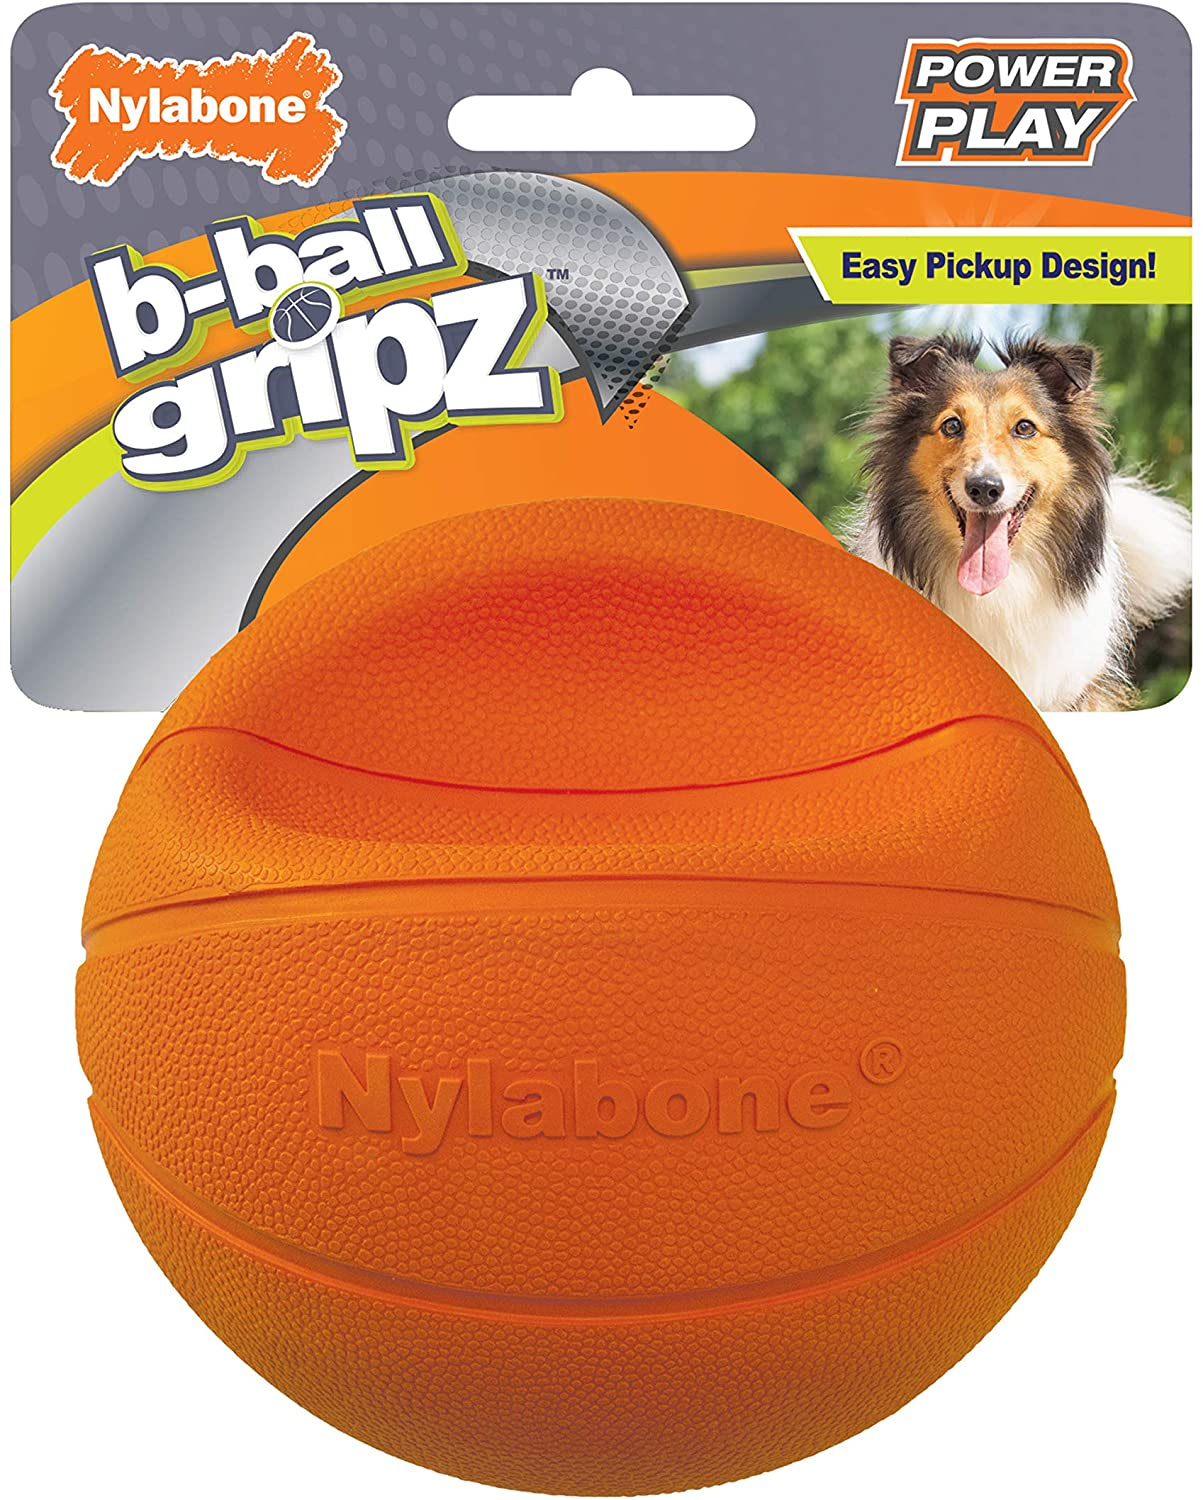 Nylabone Power Play Dog Basketball B-Ball